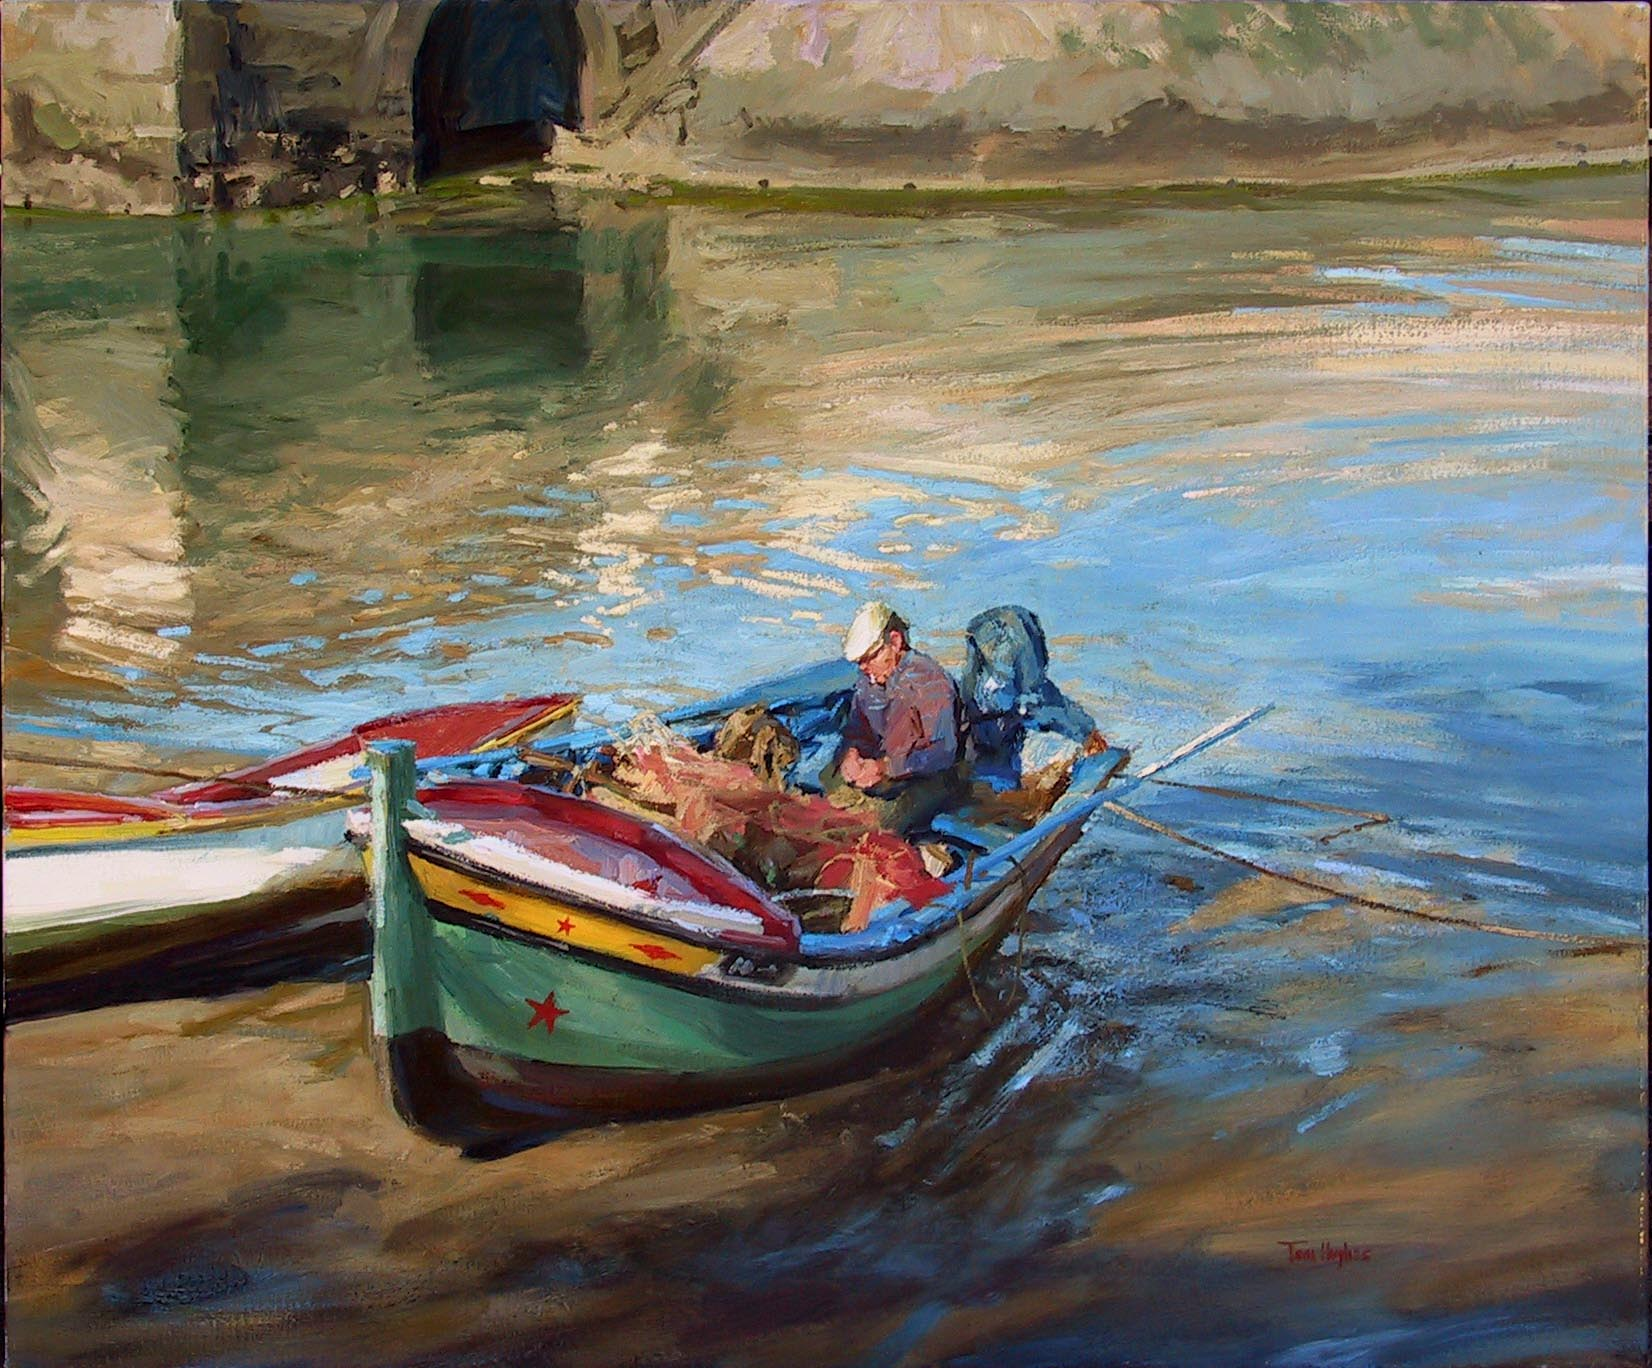 Tom hughes events shows news for Fishing boat painting